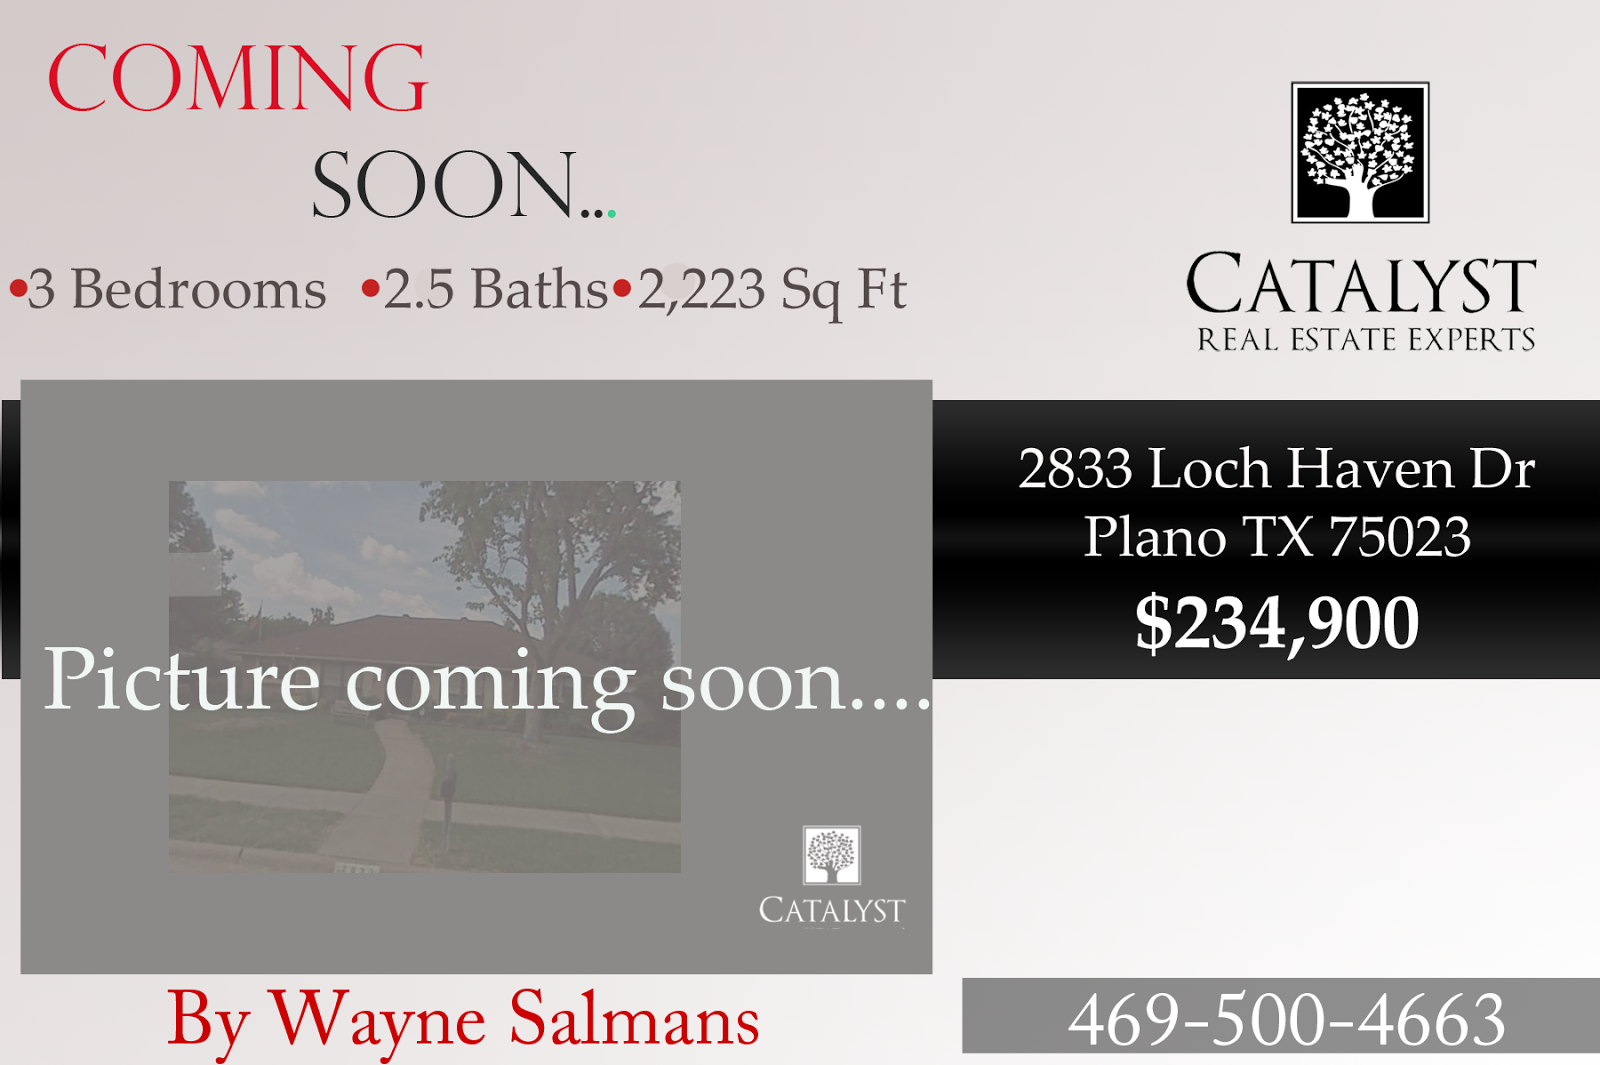 2833 Loch Haven Dr, Plano, TX 75023, homes for sale in Plano Texas, Moving in Plano Texas, Listings, Coming Soon,